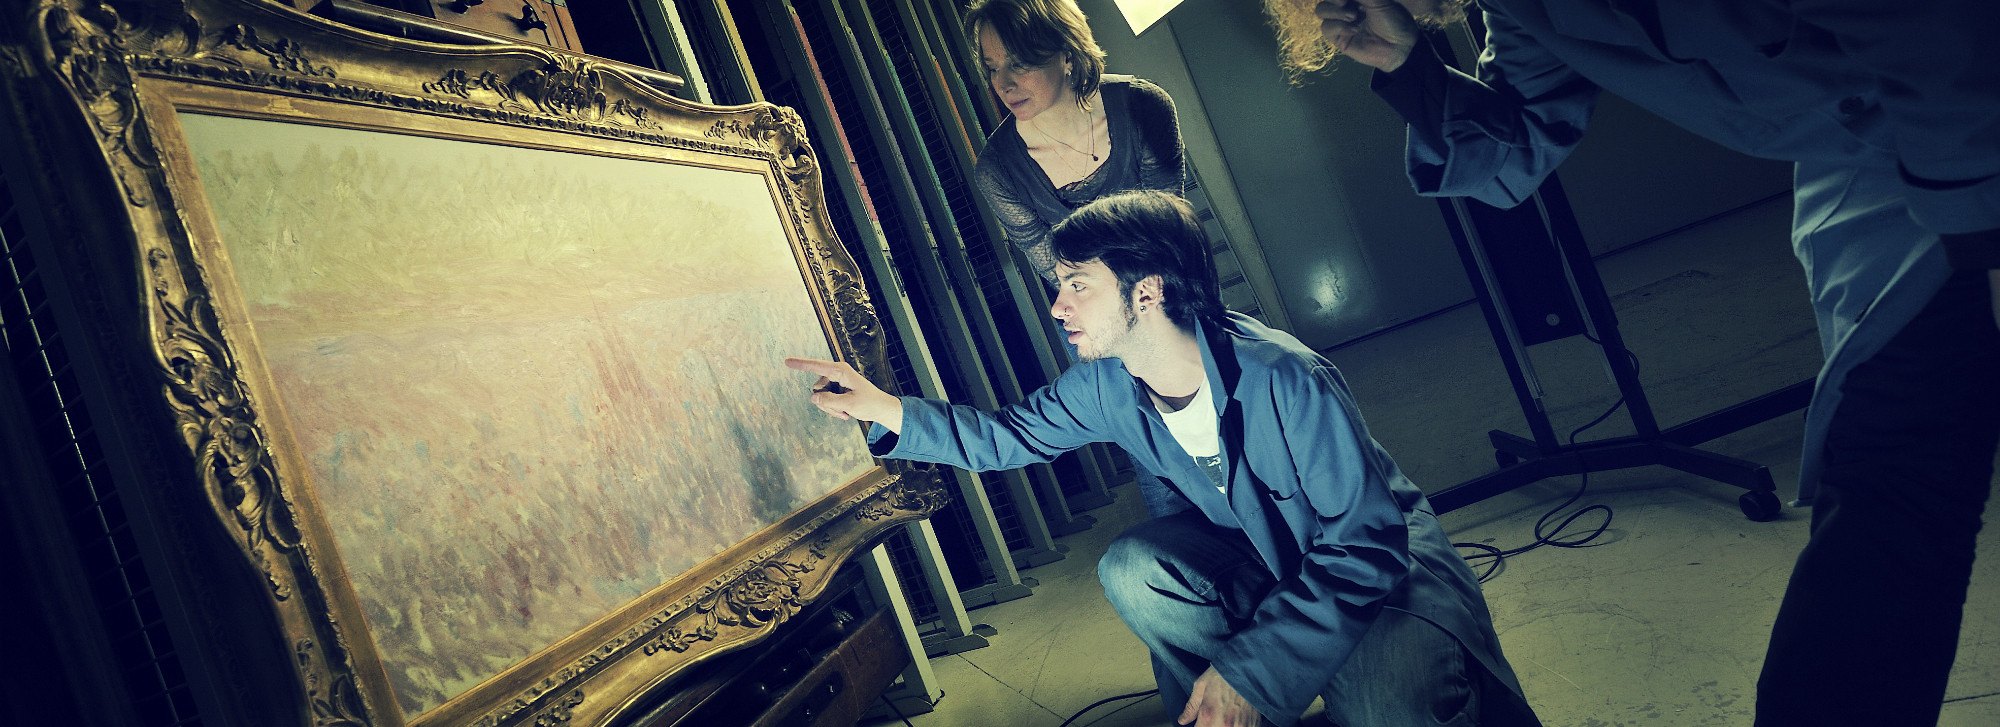 Rouen Impressionist museum and art collections